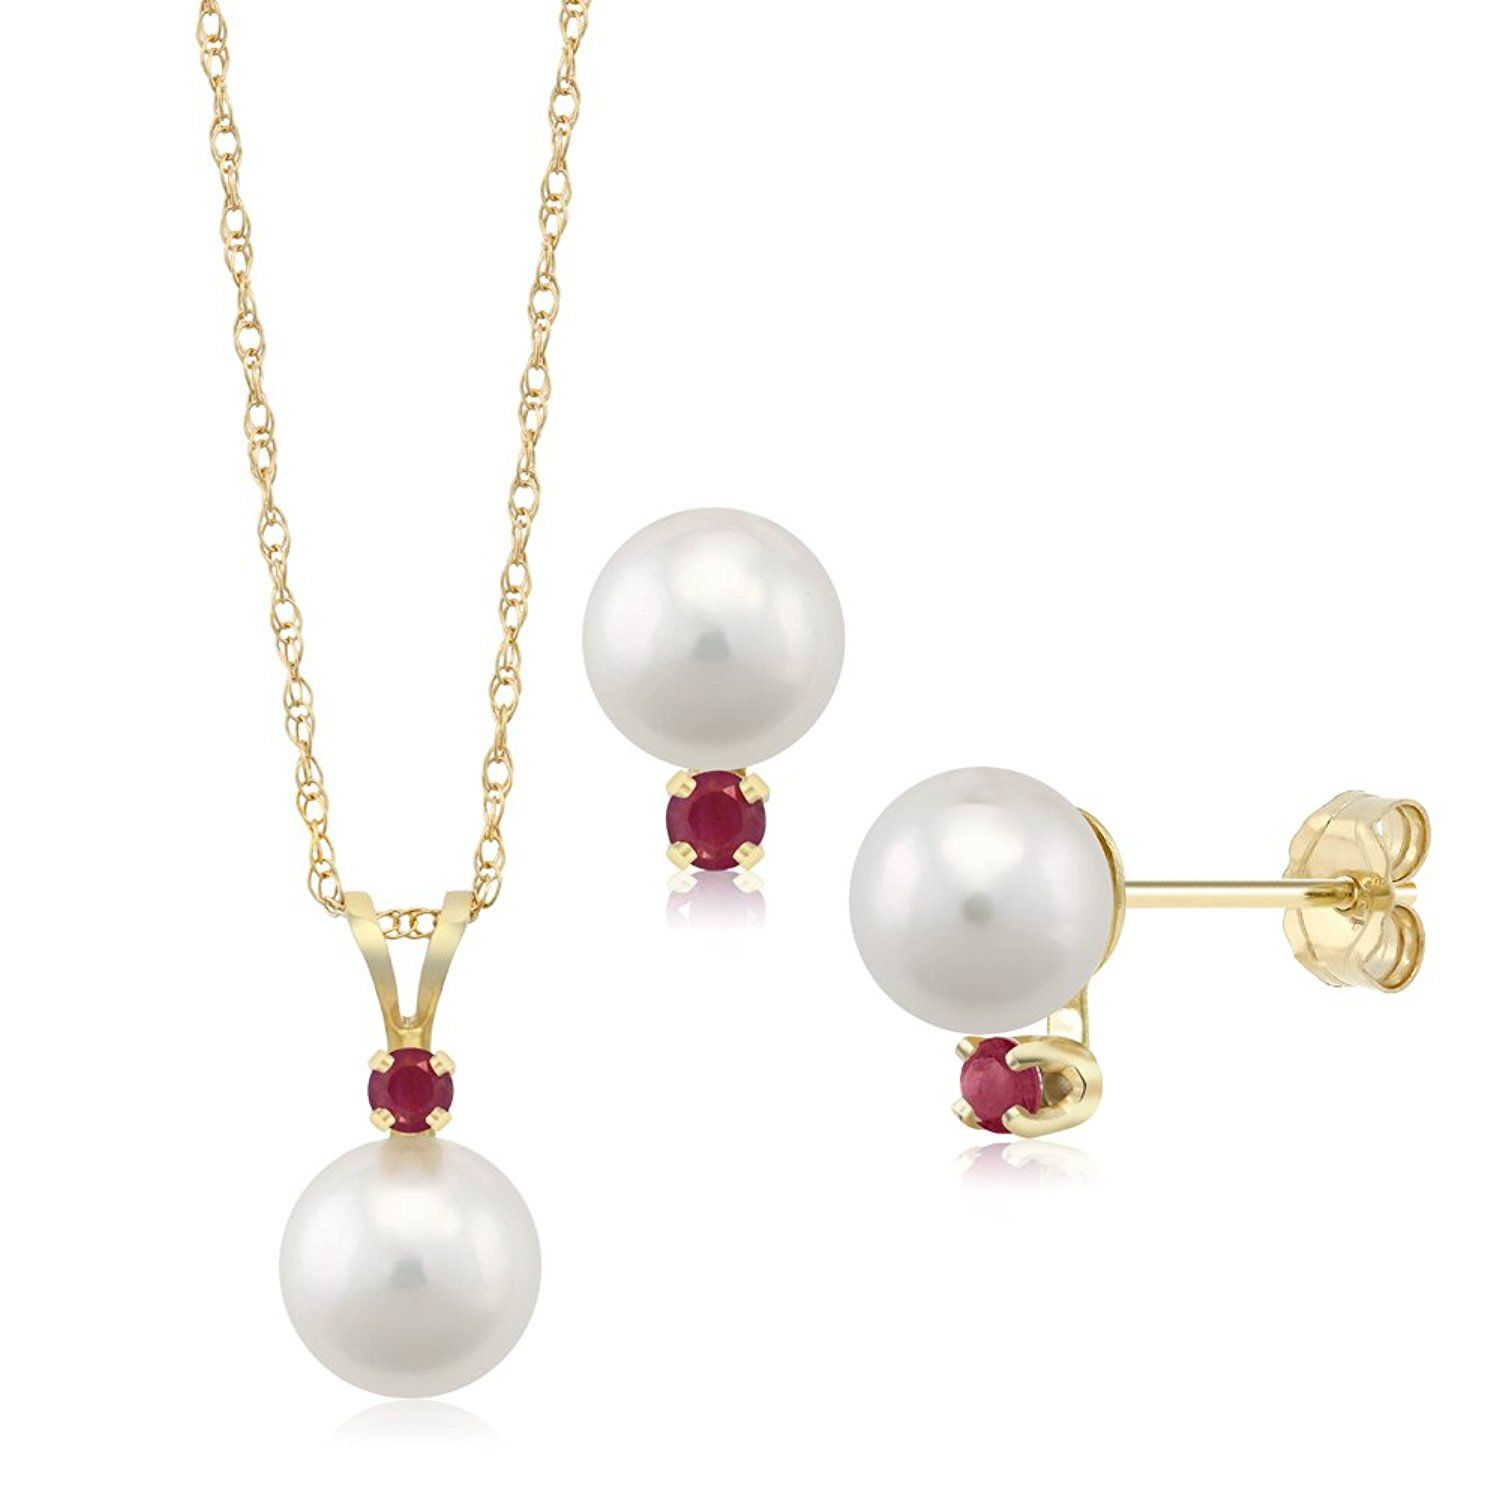 K yellow gold mm cultured akoya pearl pendant jewelryforsale